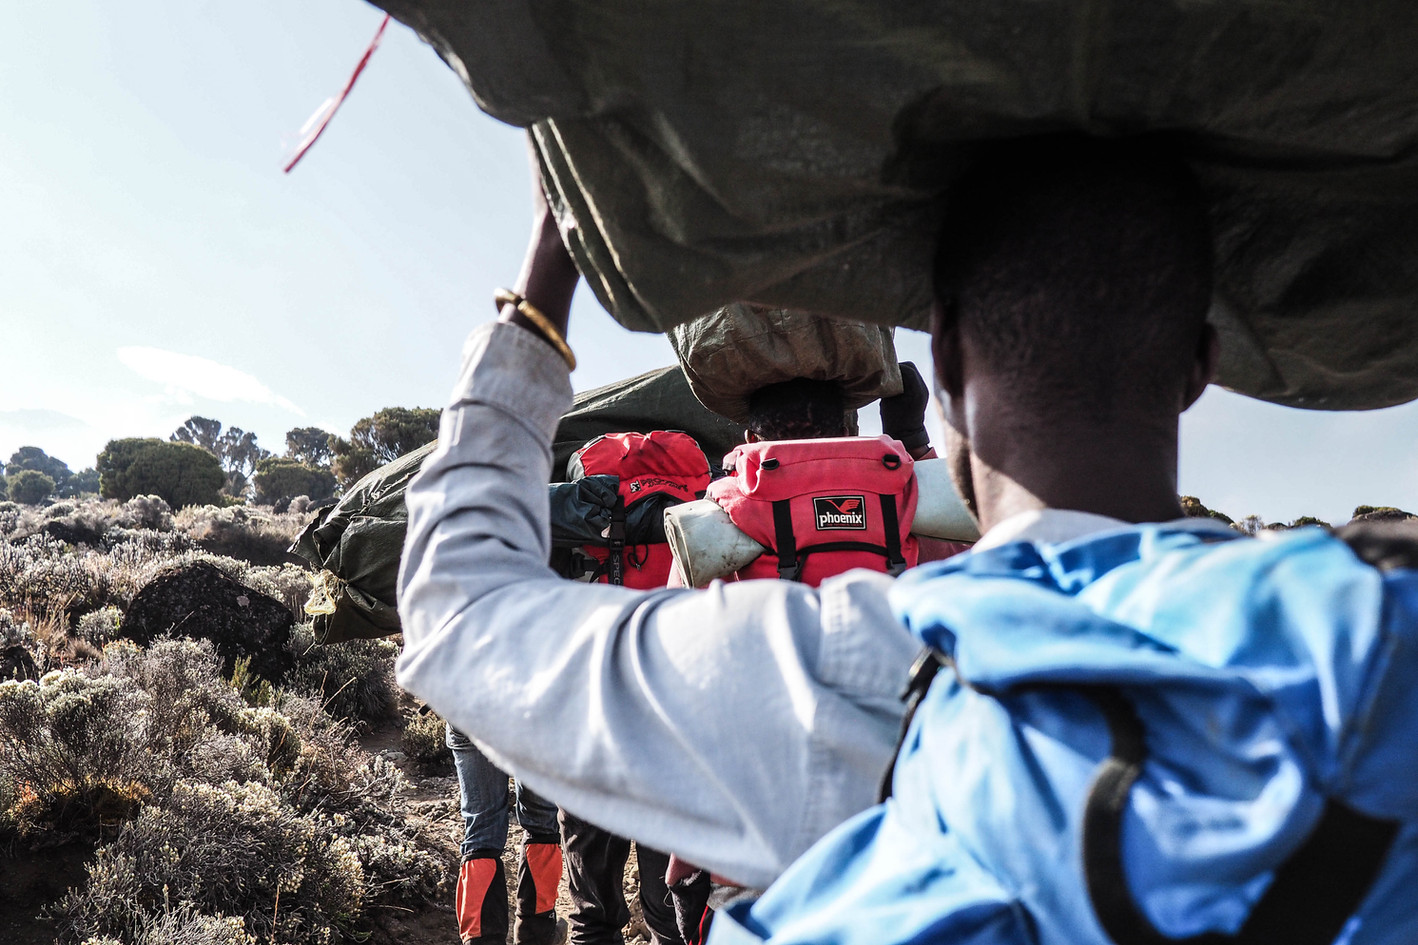 Porters carry loads to a camp high on the slopes of Mount Kilimanjaro, Africa's tallest peak.